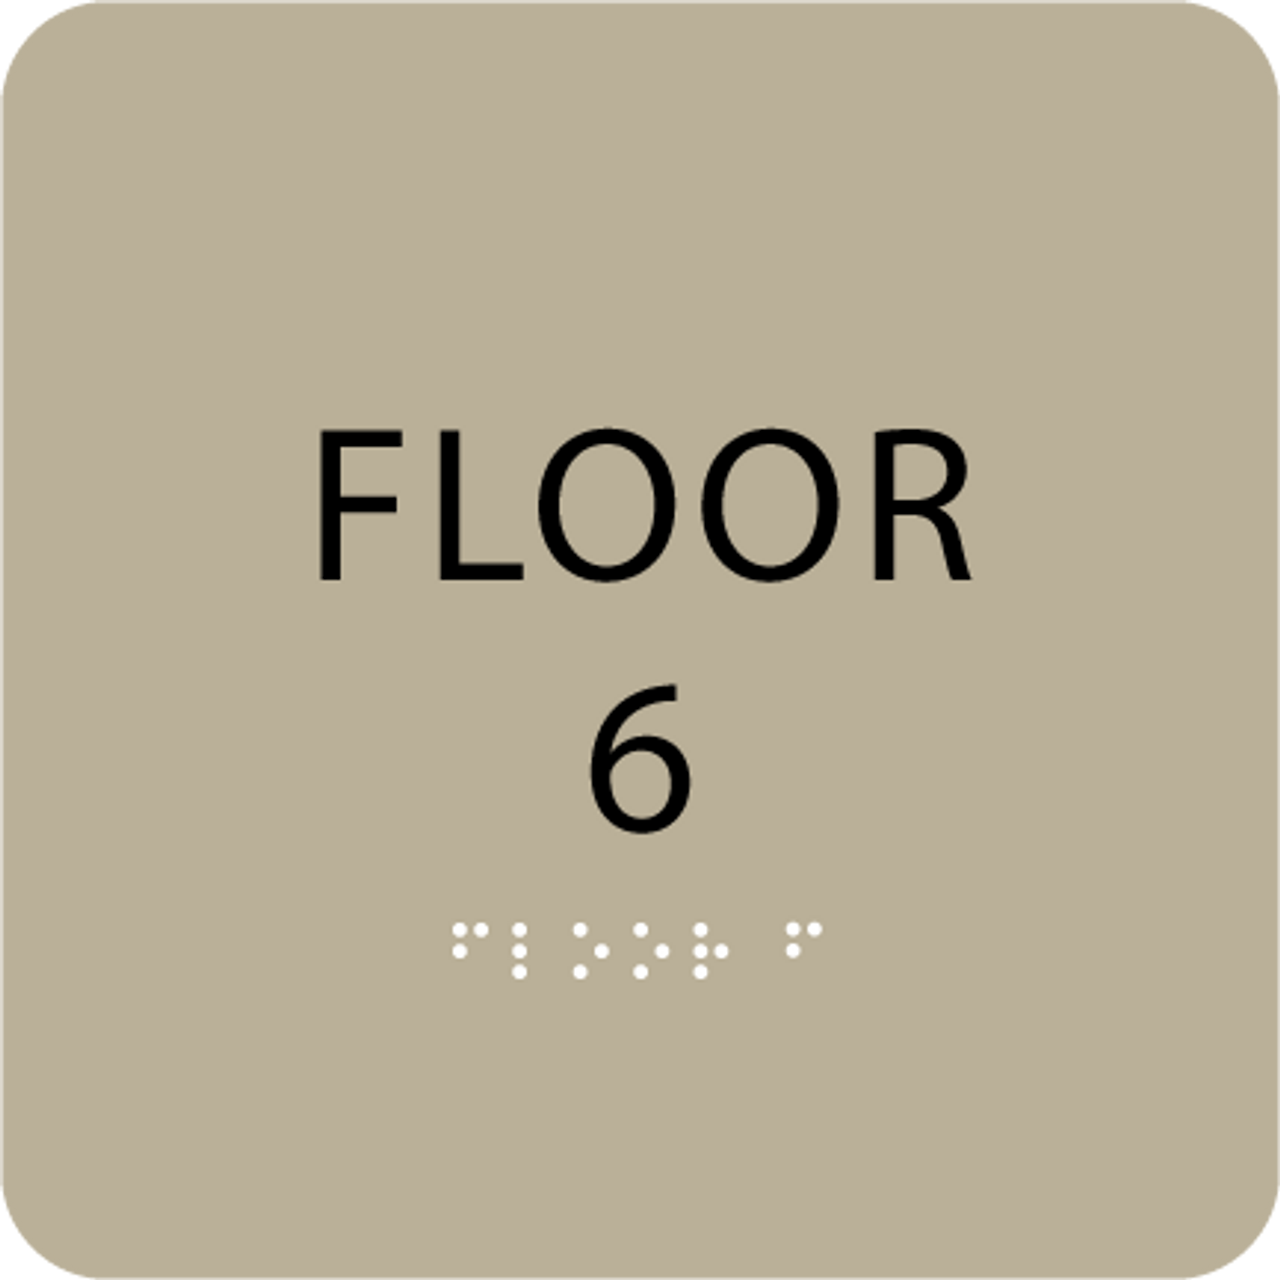 Brown Floor 6 Level Number ADA Sign